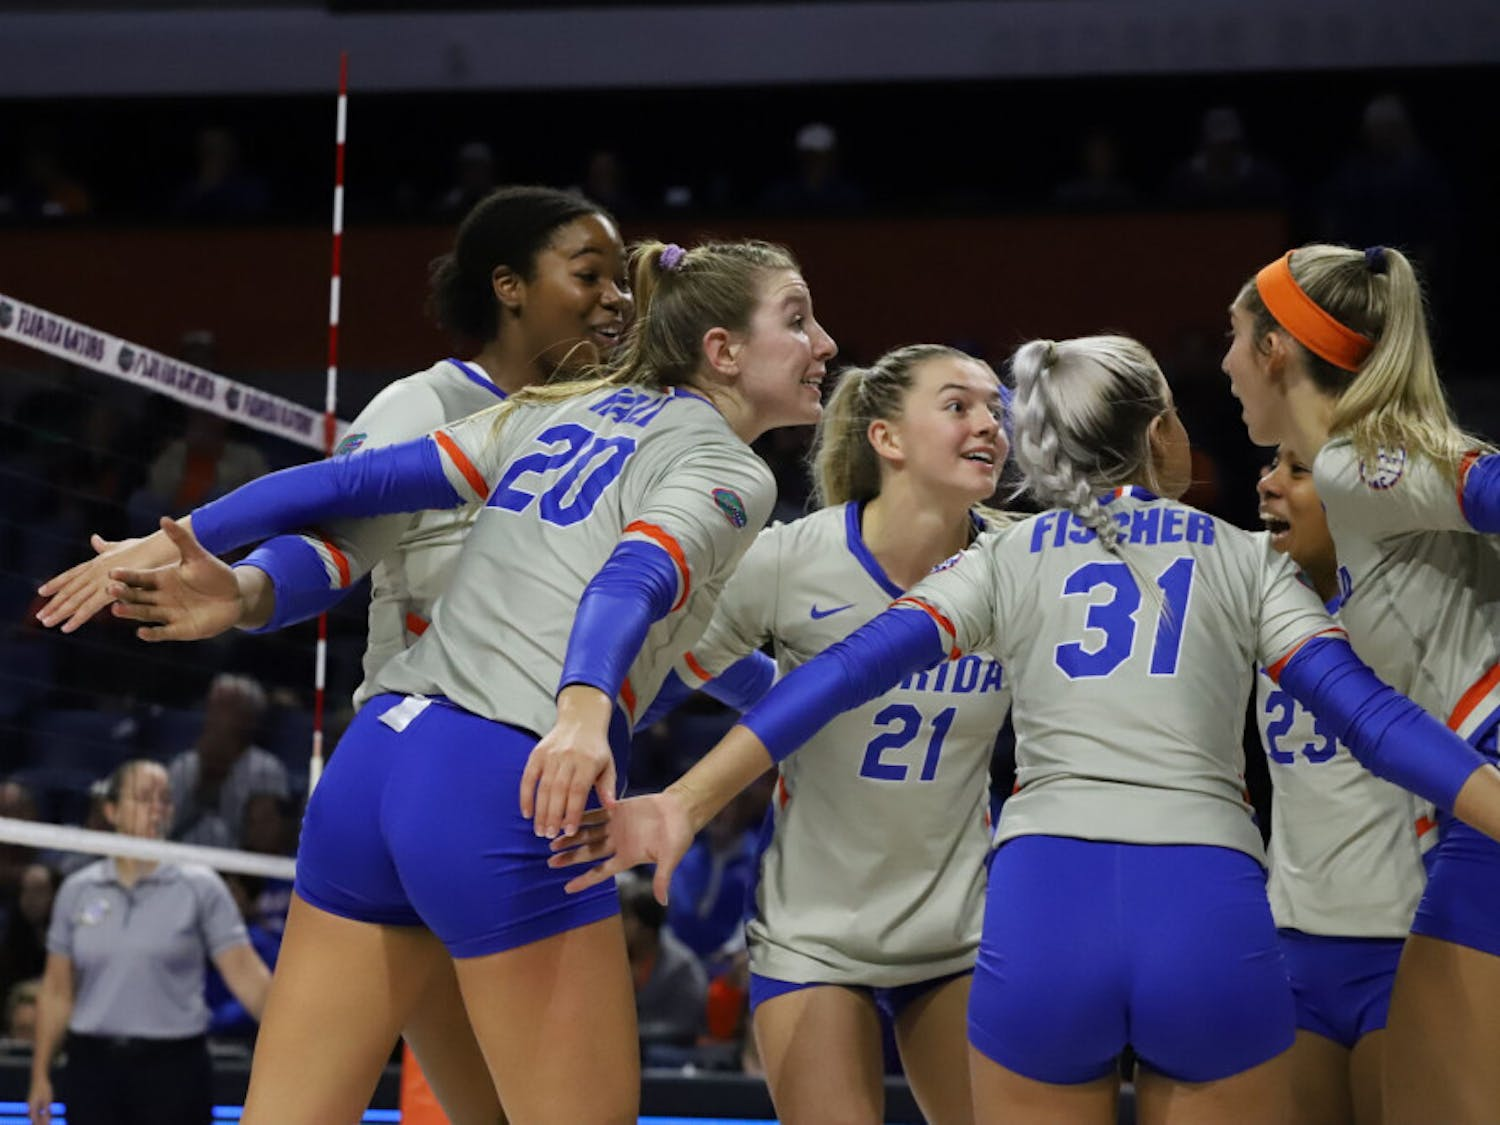 The Florida volleyball team huddles in a game against LSU in 2019. No. 5 Florida takes on No. 10 Minnesota Sunday at 2 p.m. in the O'Dome.